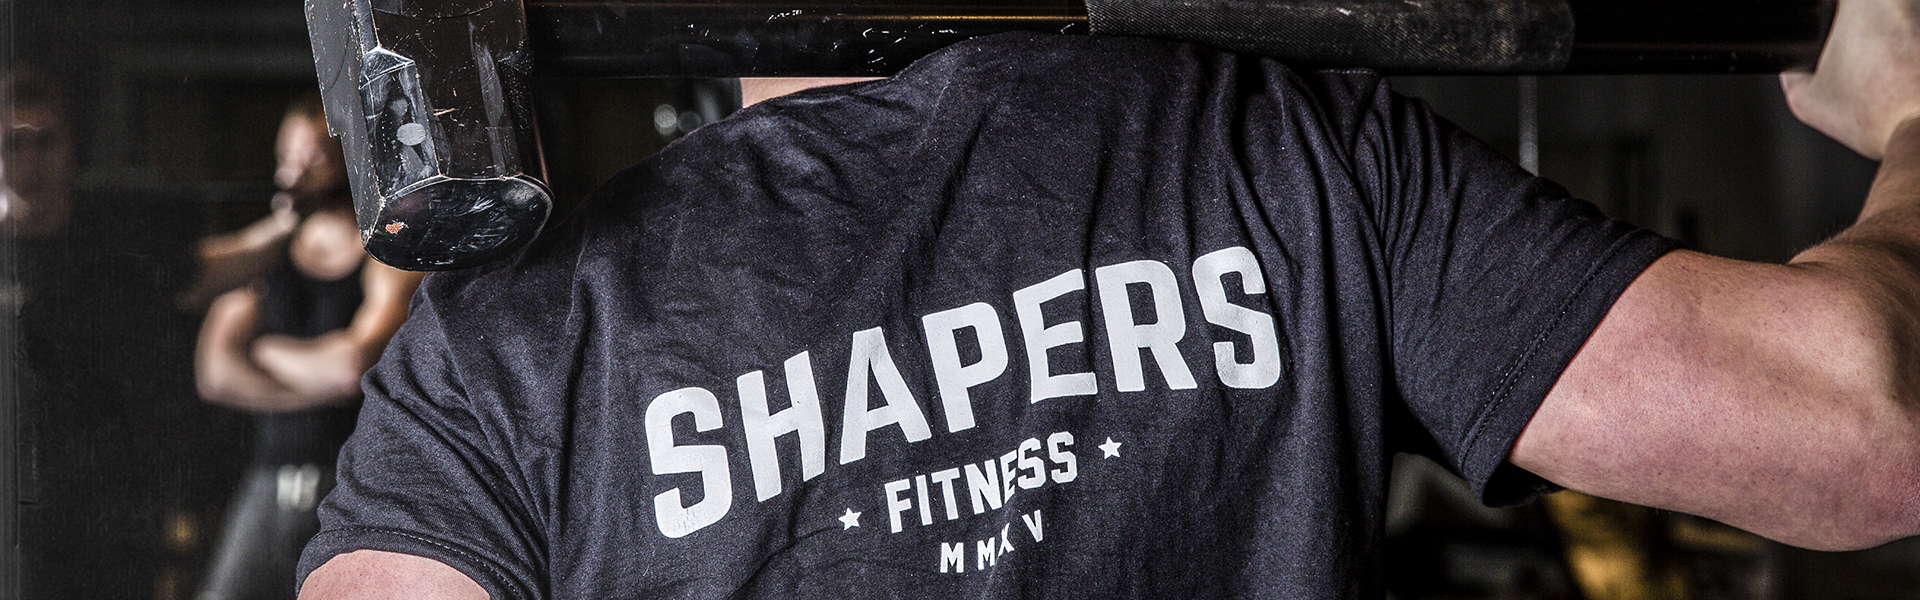 Shapers Fitness 5(1)